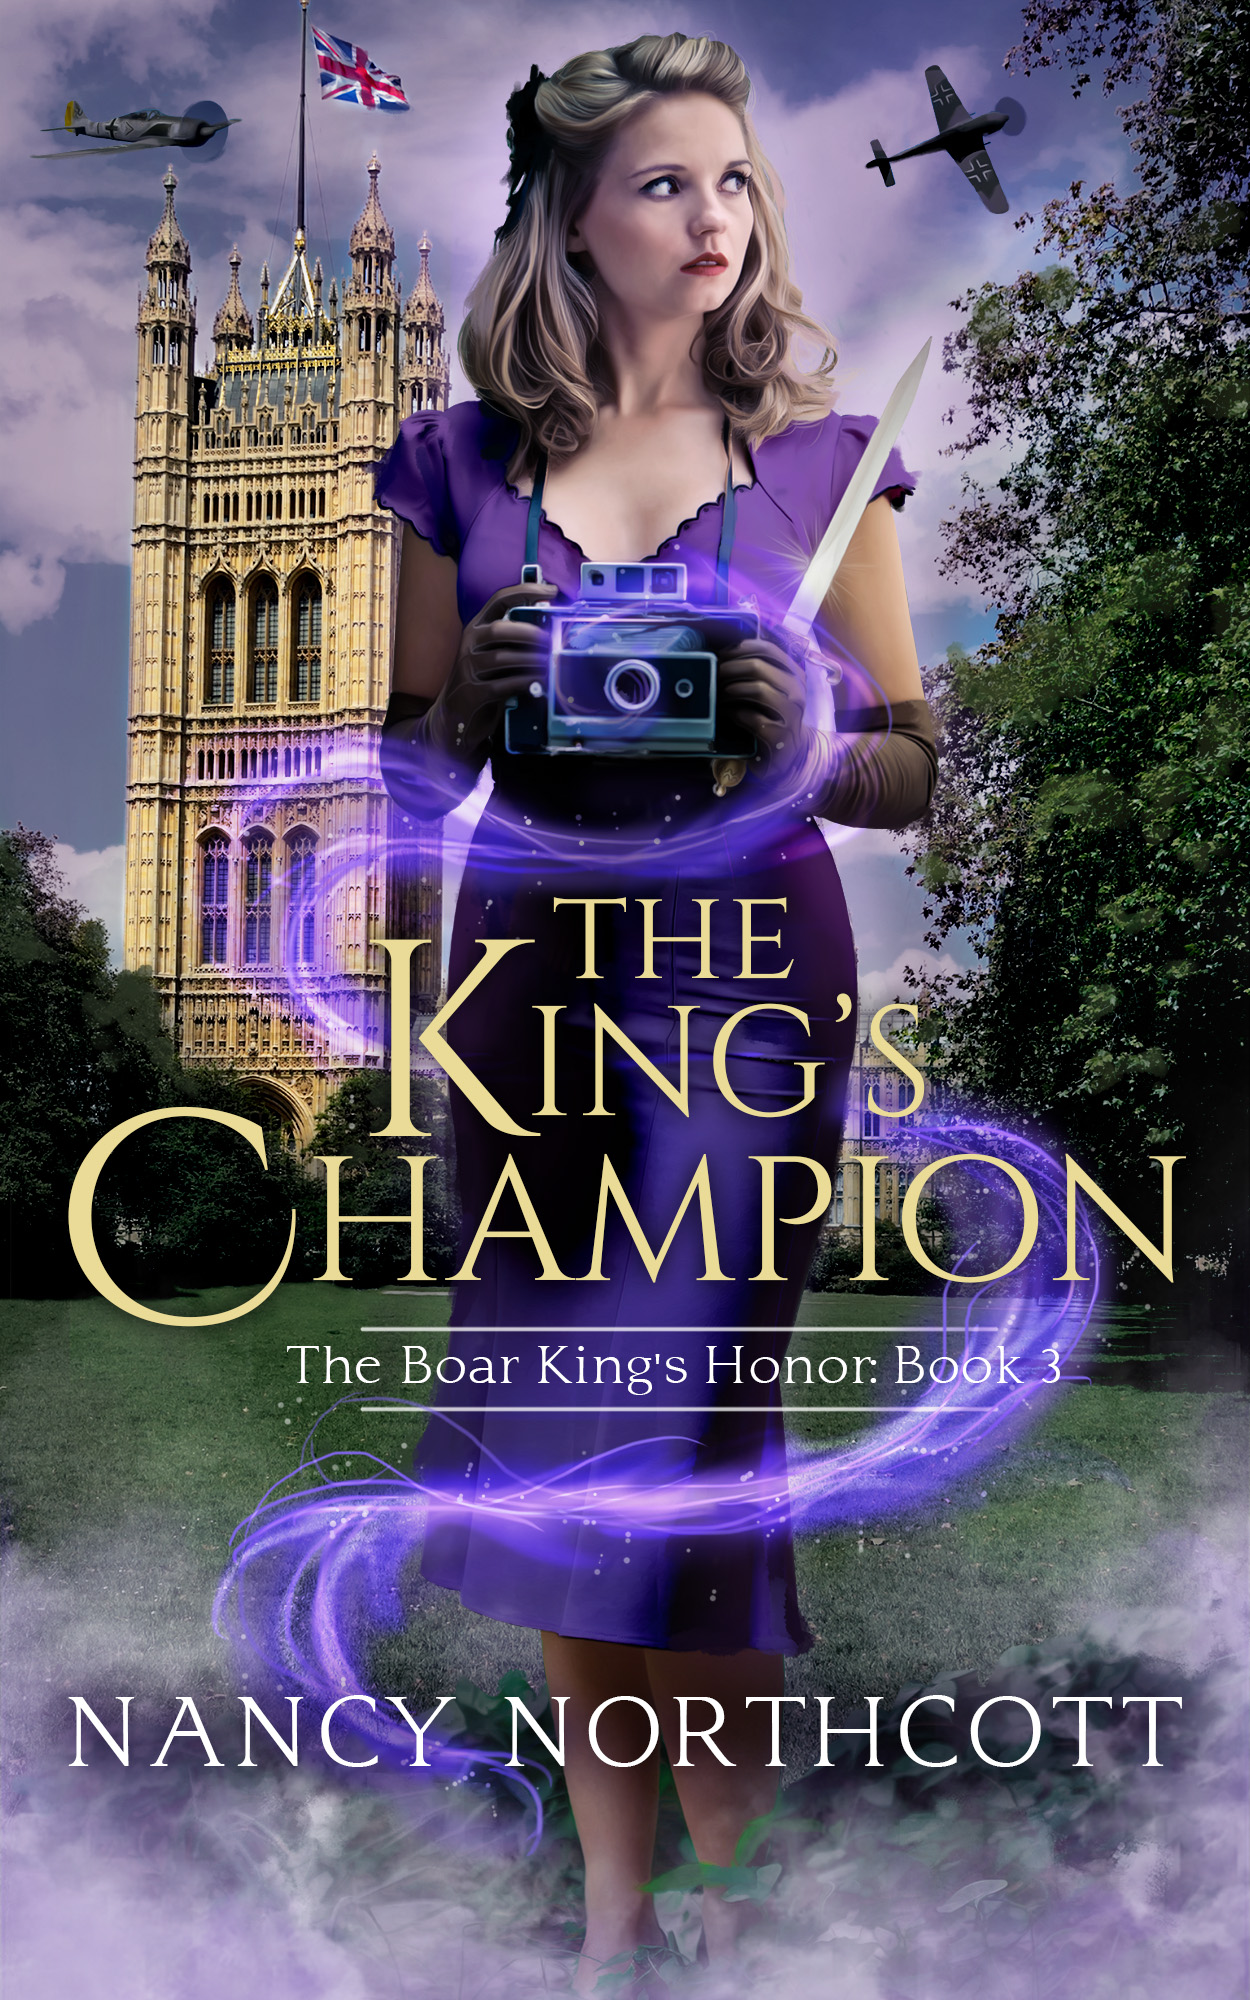 The King's Champion final FANTASY EDIT for Barnes and Noble